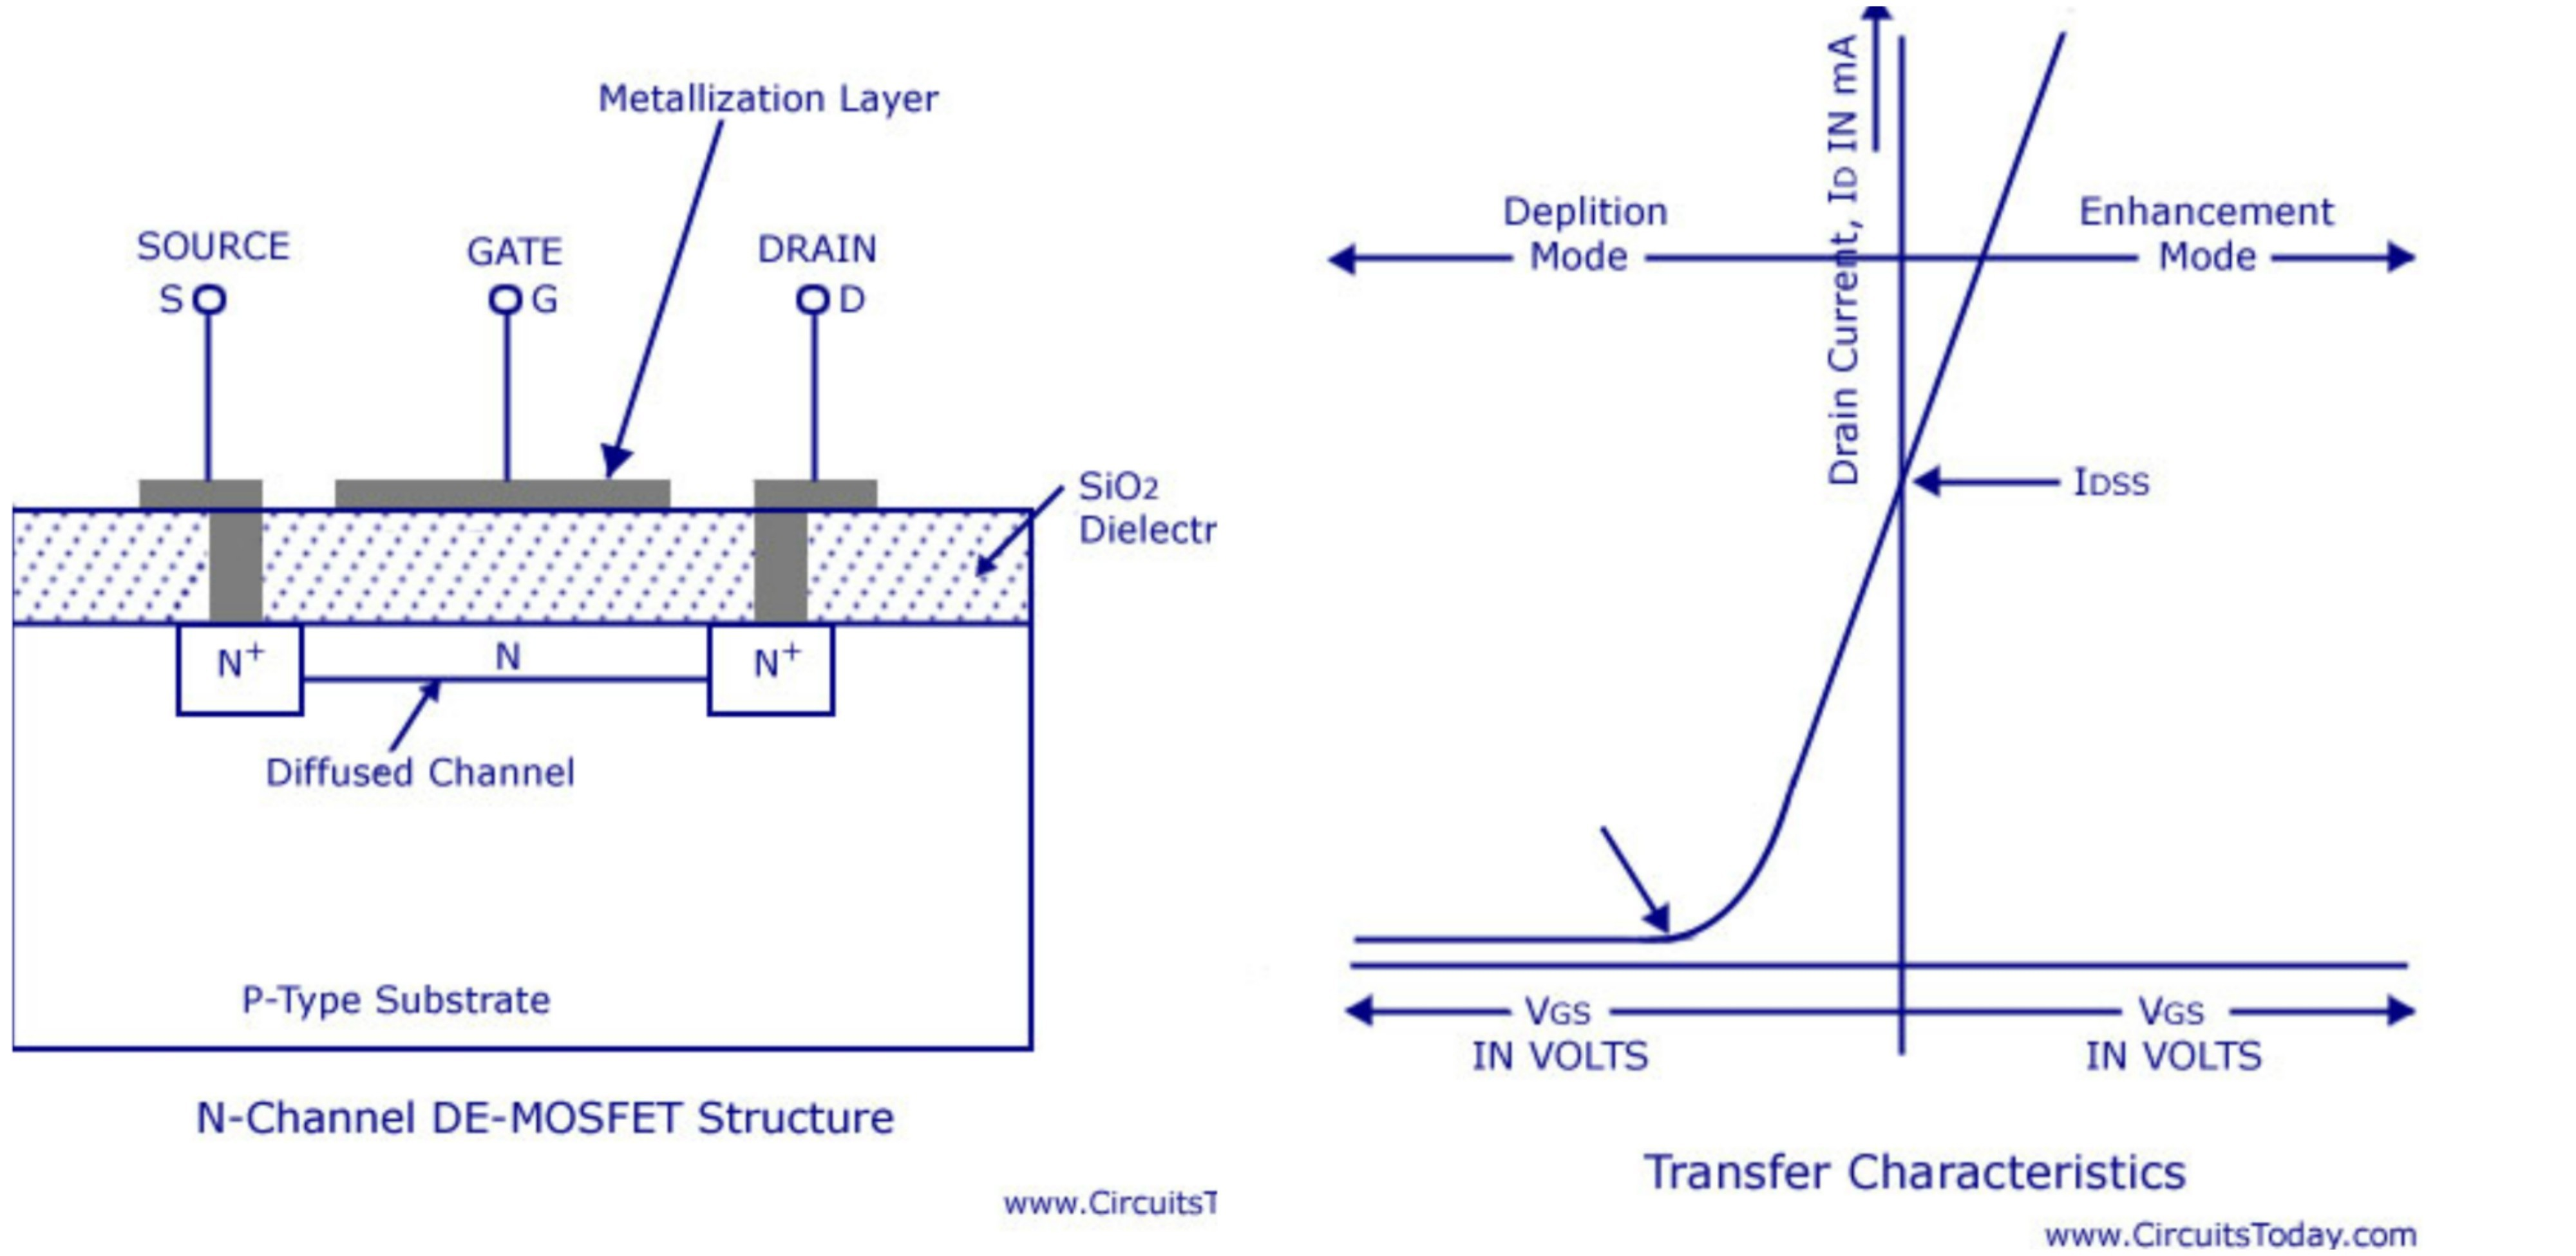 led load resistor wiring diagram Collection Led Load Resistor Wiring Diagram Best Enhancement Mosfet Operation